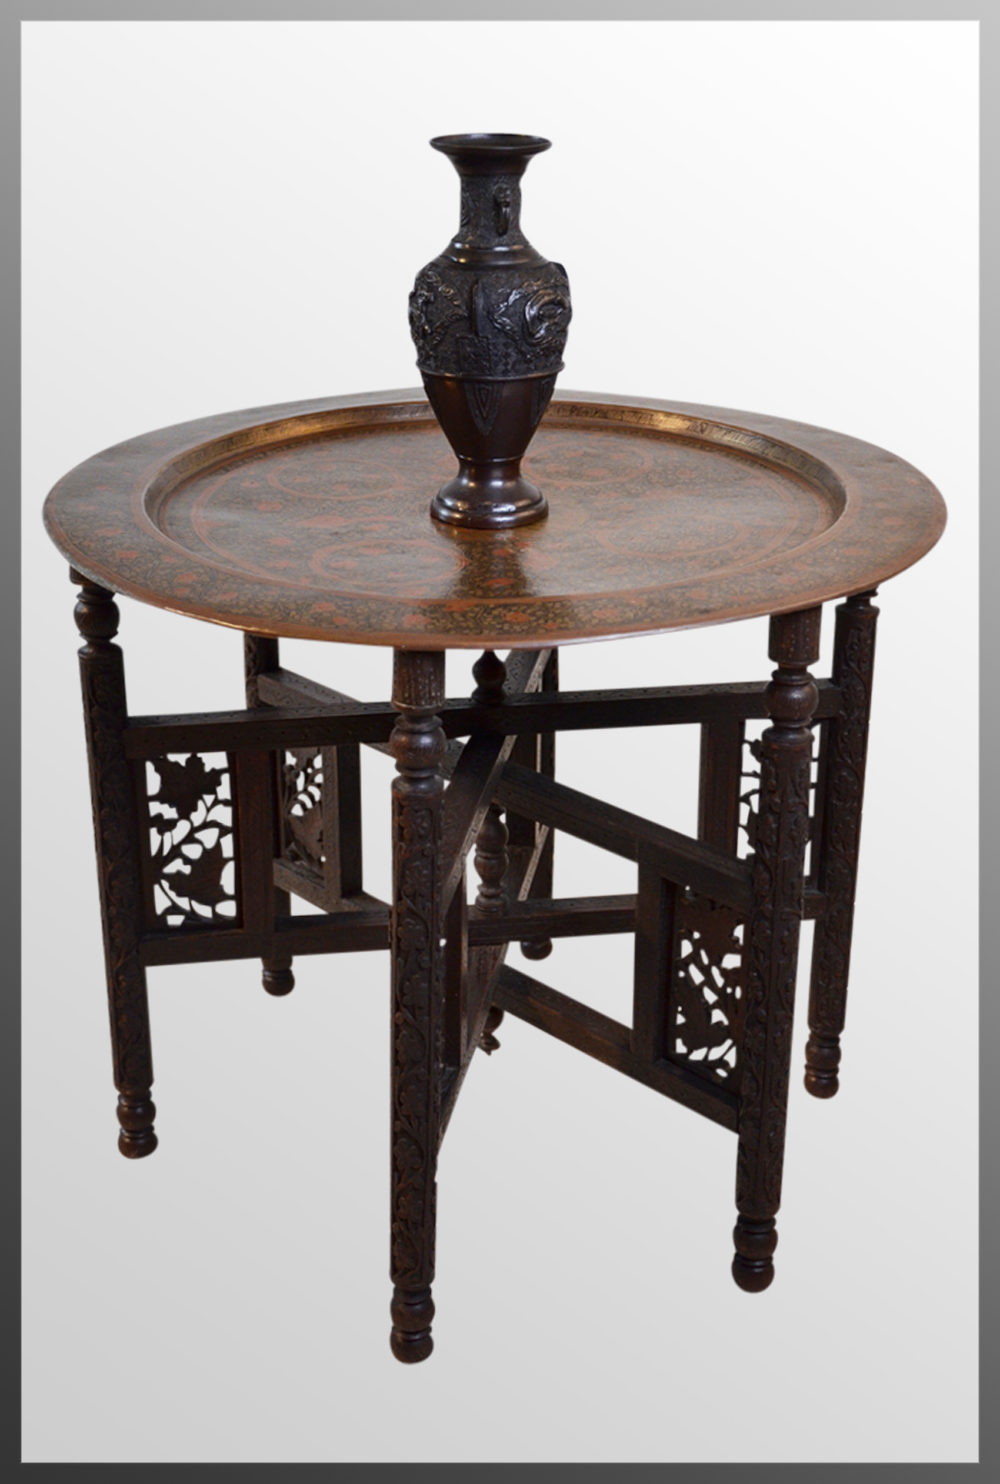 The antique coffee tea table berber benares tray lamp oriental folding - Berber Benares Brass Tray Serving Lamp Table Antique Occasional Tables